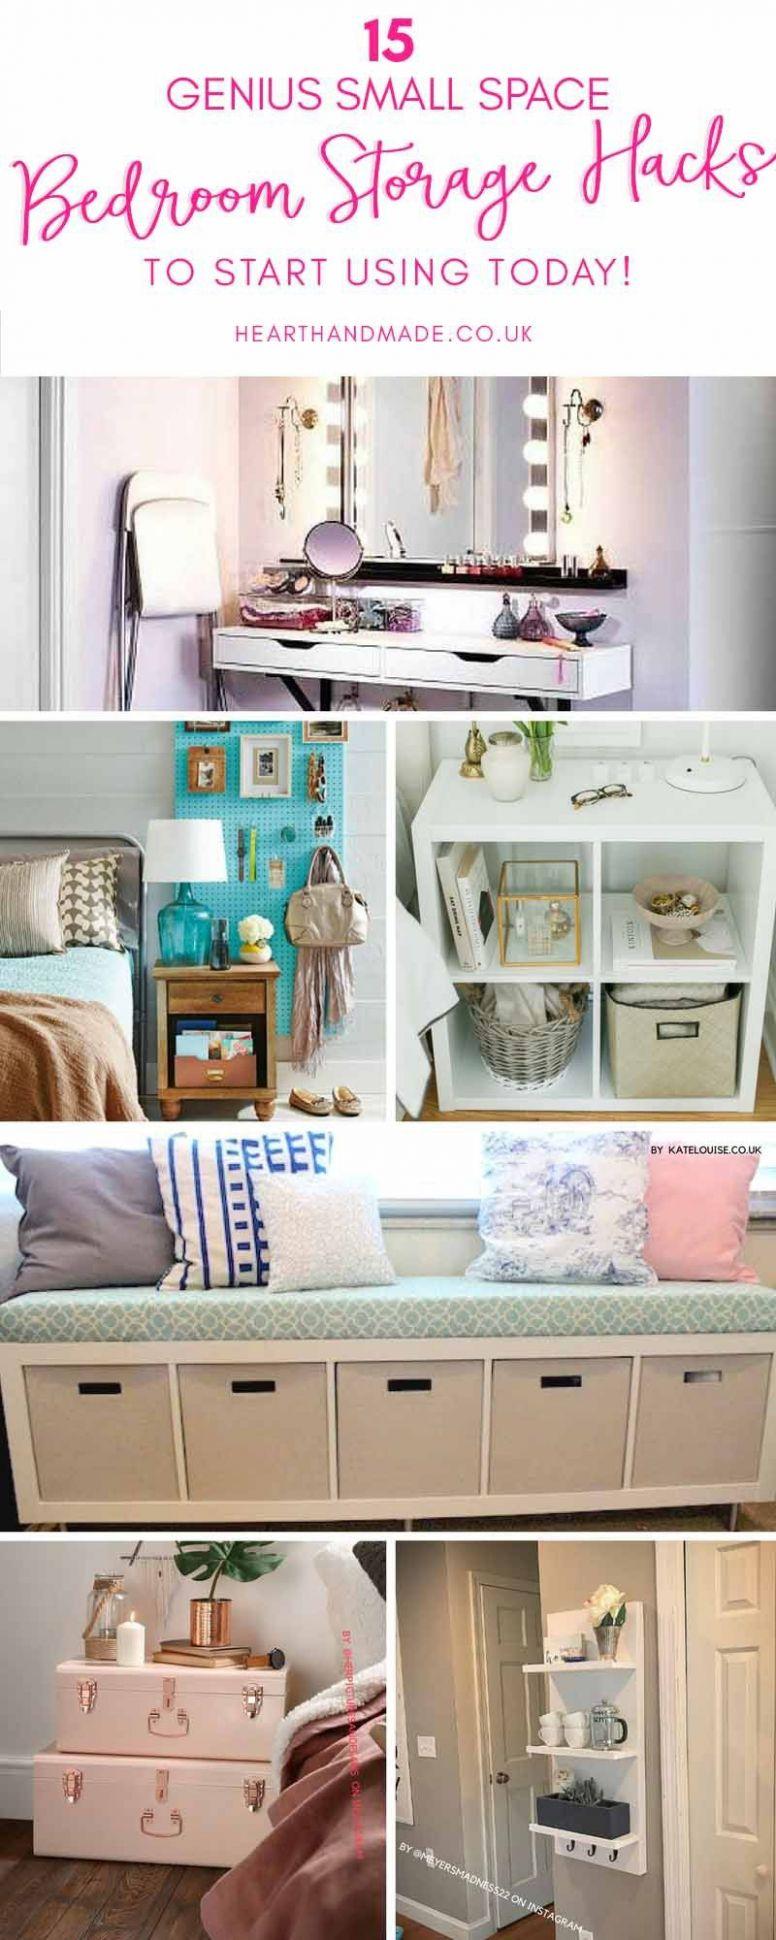 Are you in need of some genius bedroom storage ideas? | Bedroom ..